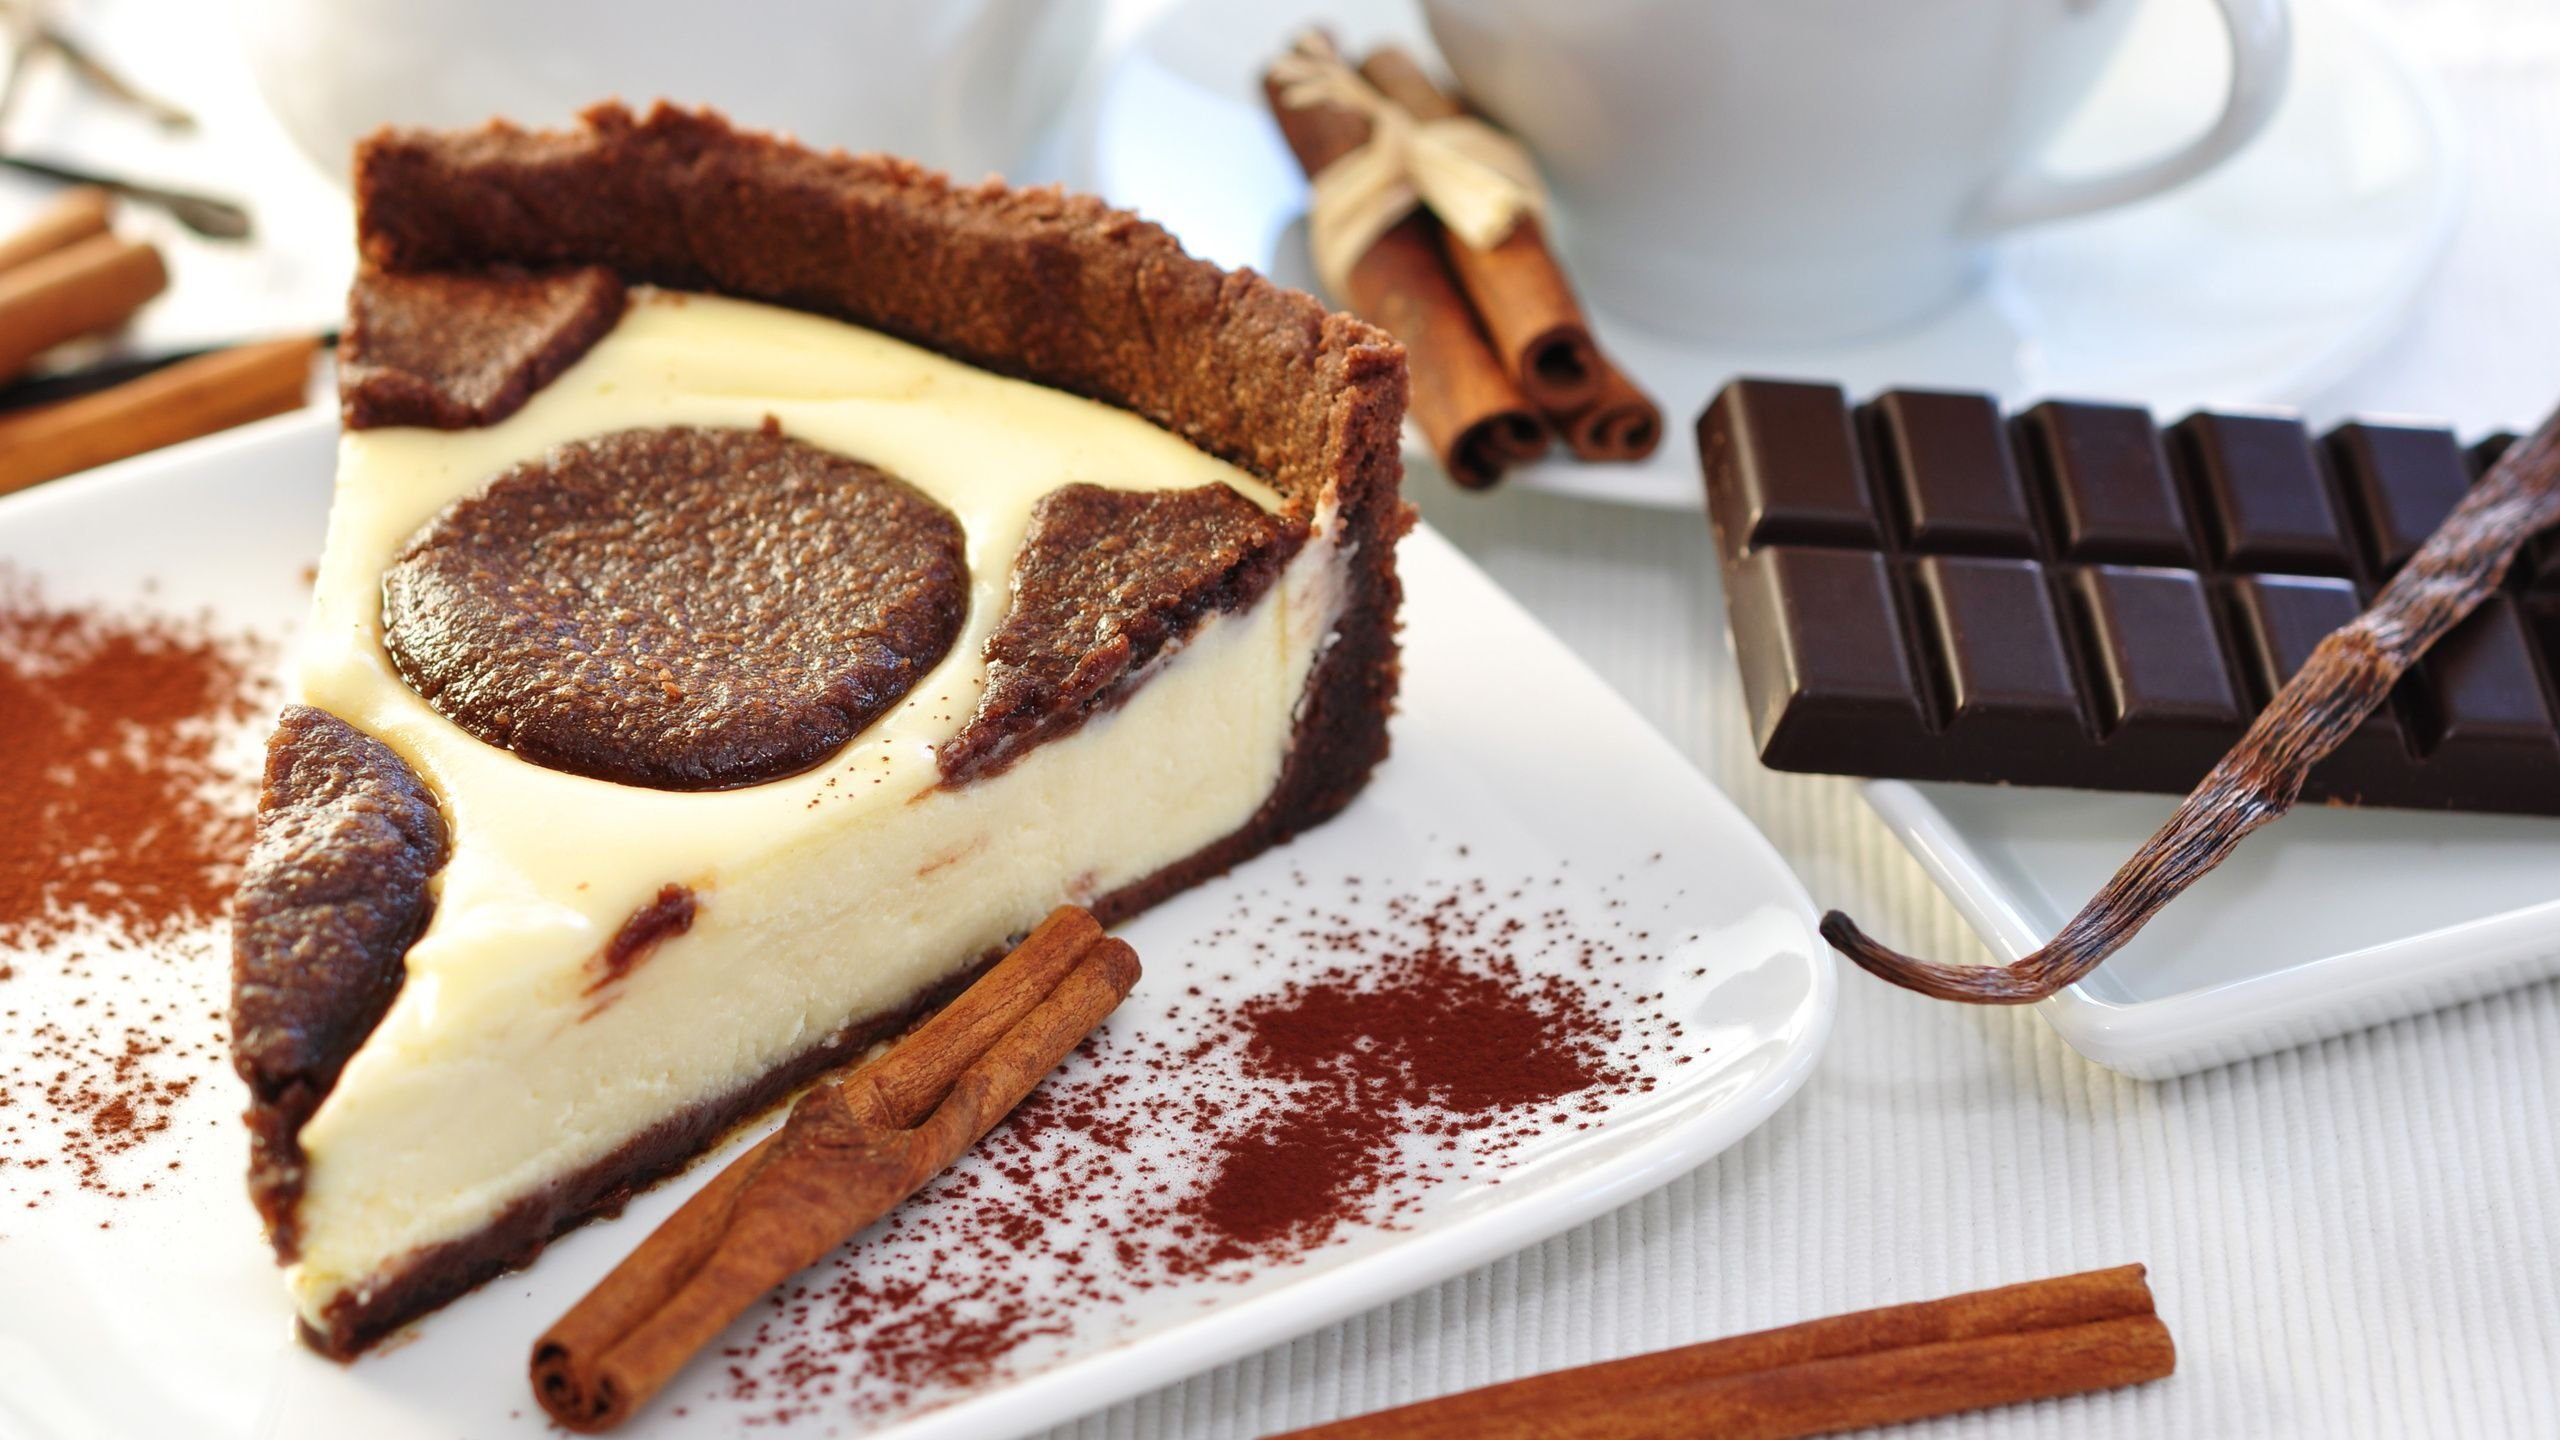 Download Cheesecake Wallpaper Gallery